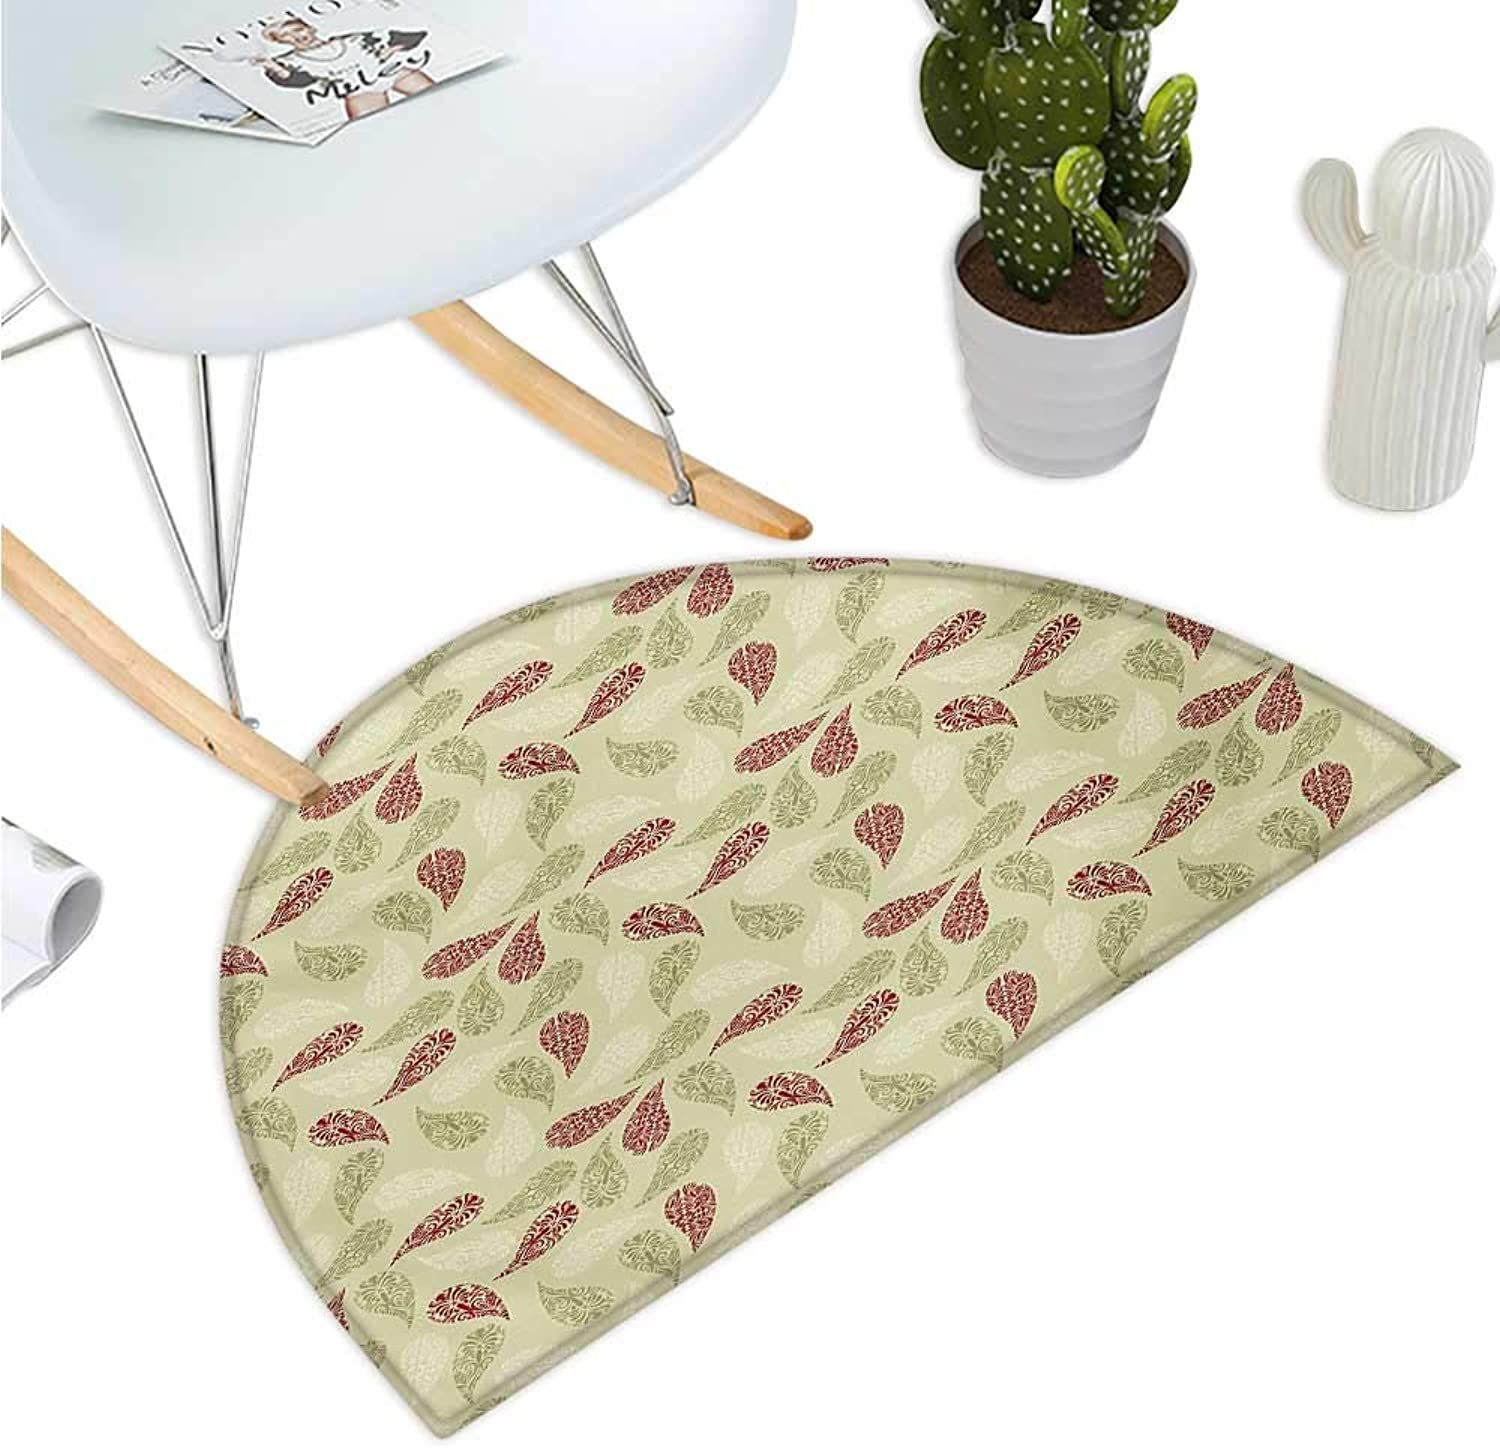 Paisley Semicircular Cushion Modern Design with Floral Like Patterns on The Leaf Like Shapes Print Entry Door Mat H 35.4  xD 53.1  Red and Pale Green